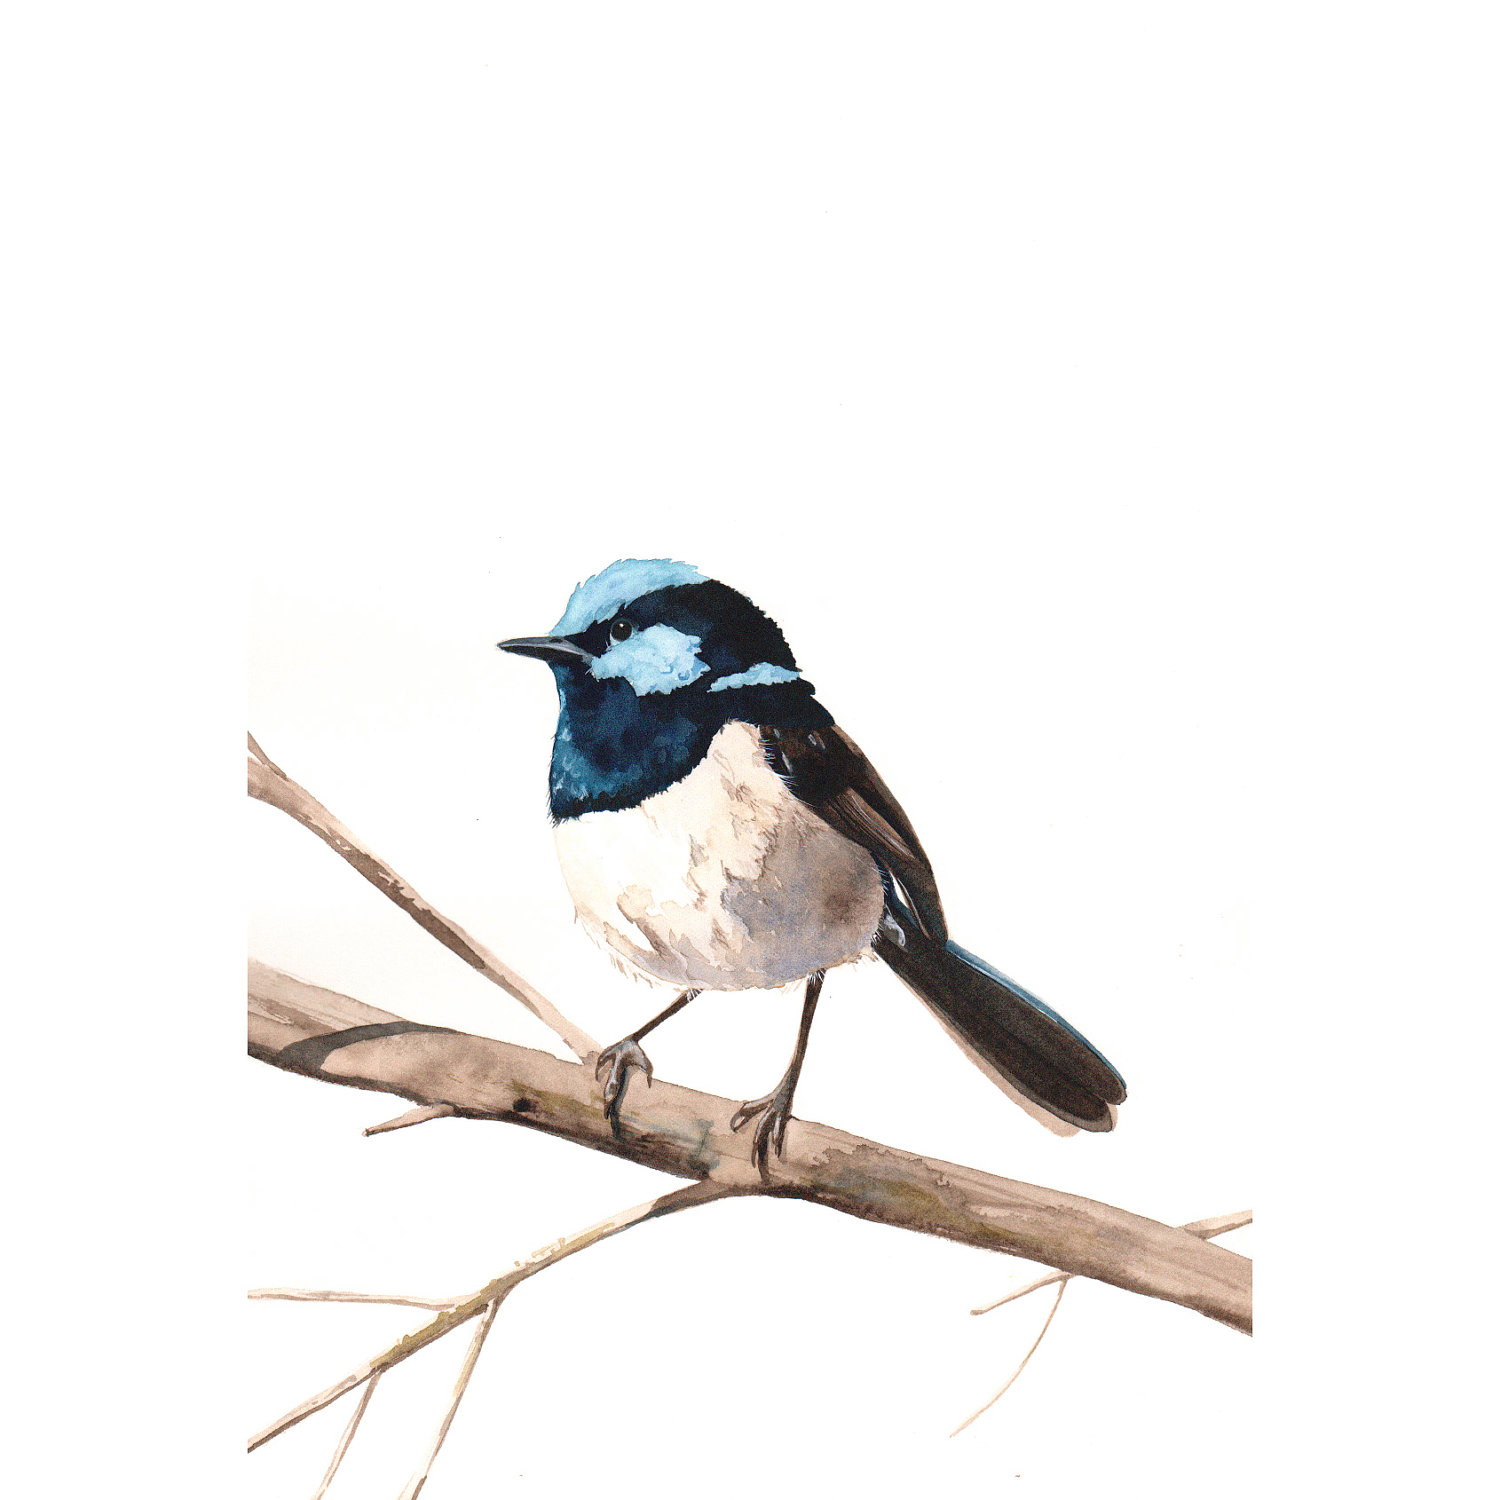 Fairy-wren clipart #6, Download drawings